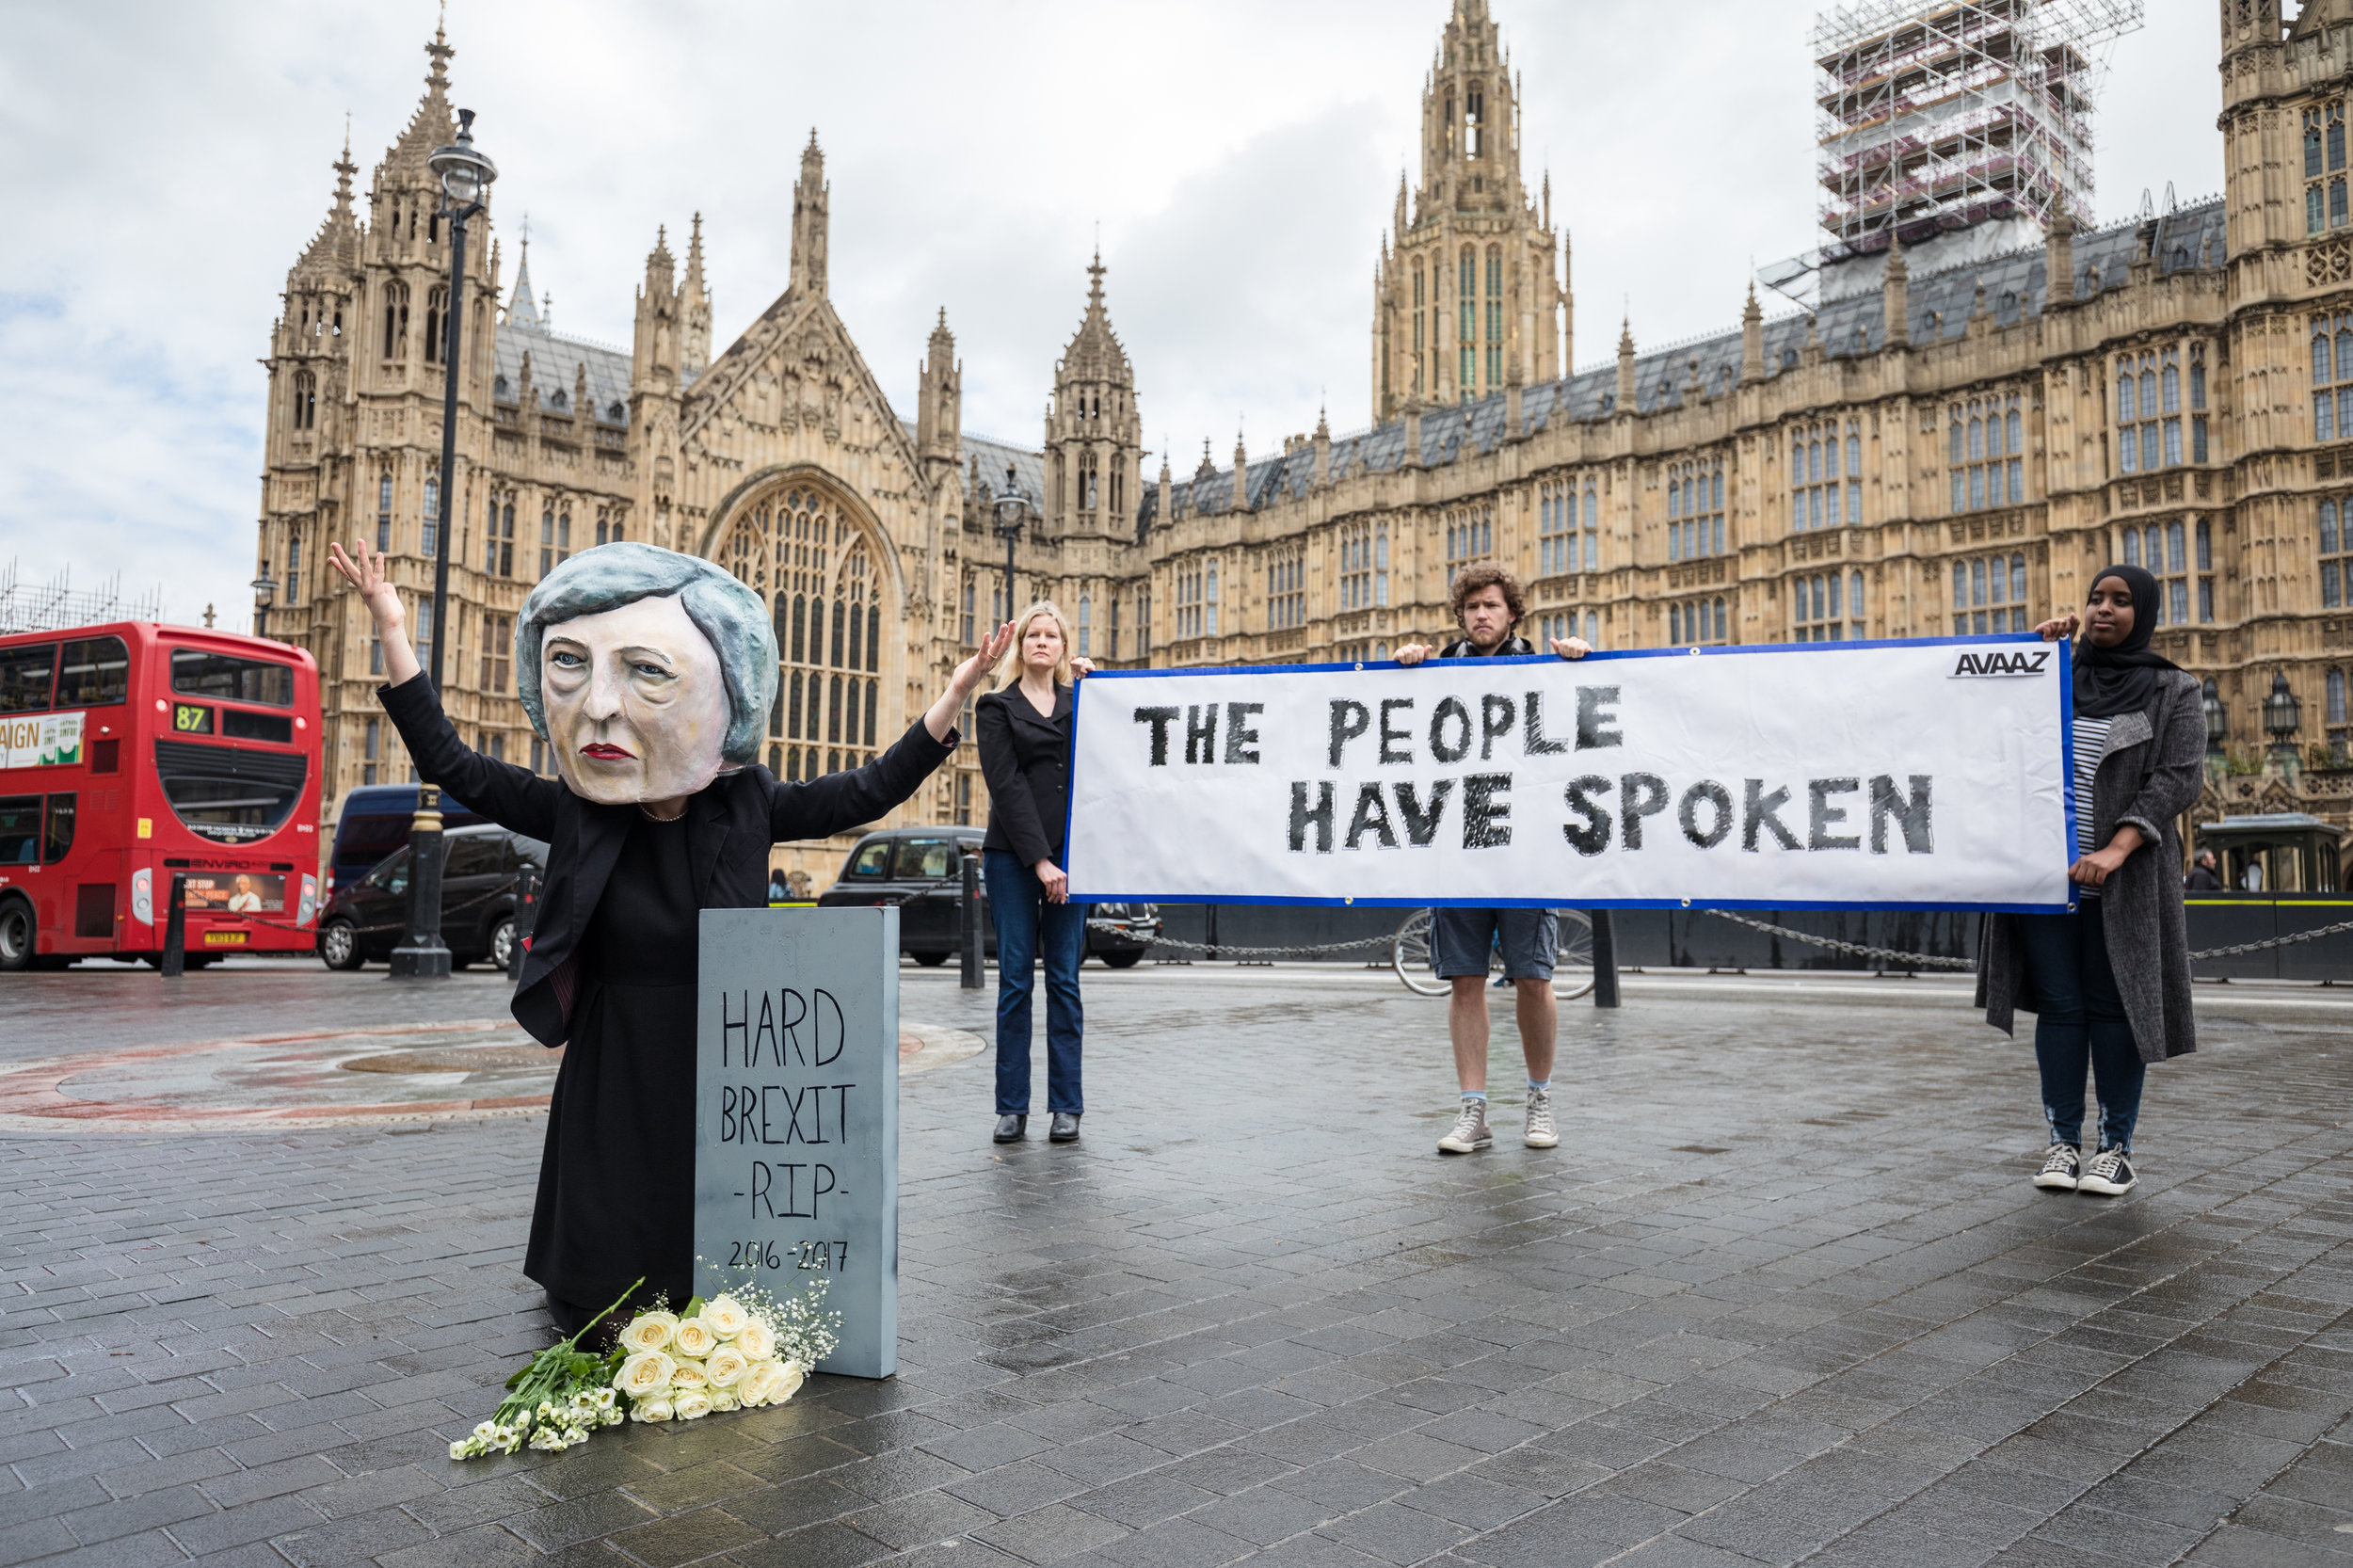 Anti-Brexit protesters in front of the Palace of Westminster in 2017. (Avaaz/Wikimedia Commons)